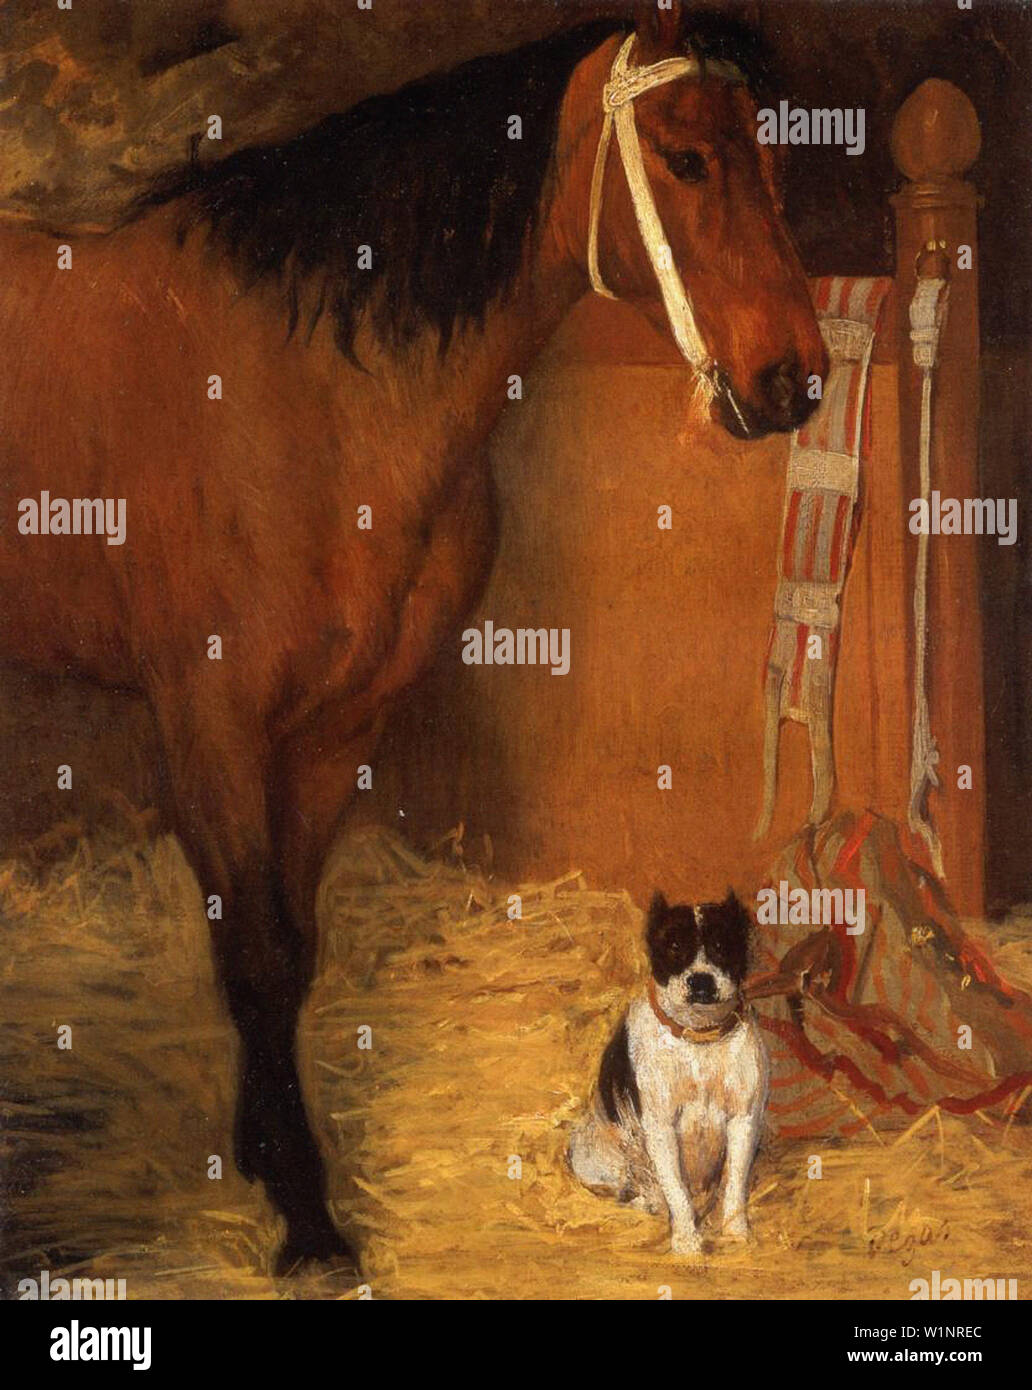 Edgar Degas - At Stables Horse Dog C 1861 - Stock Image